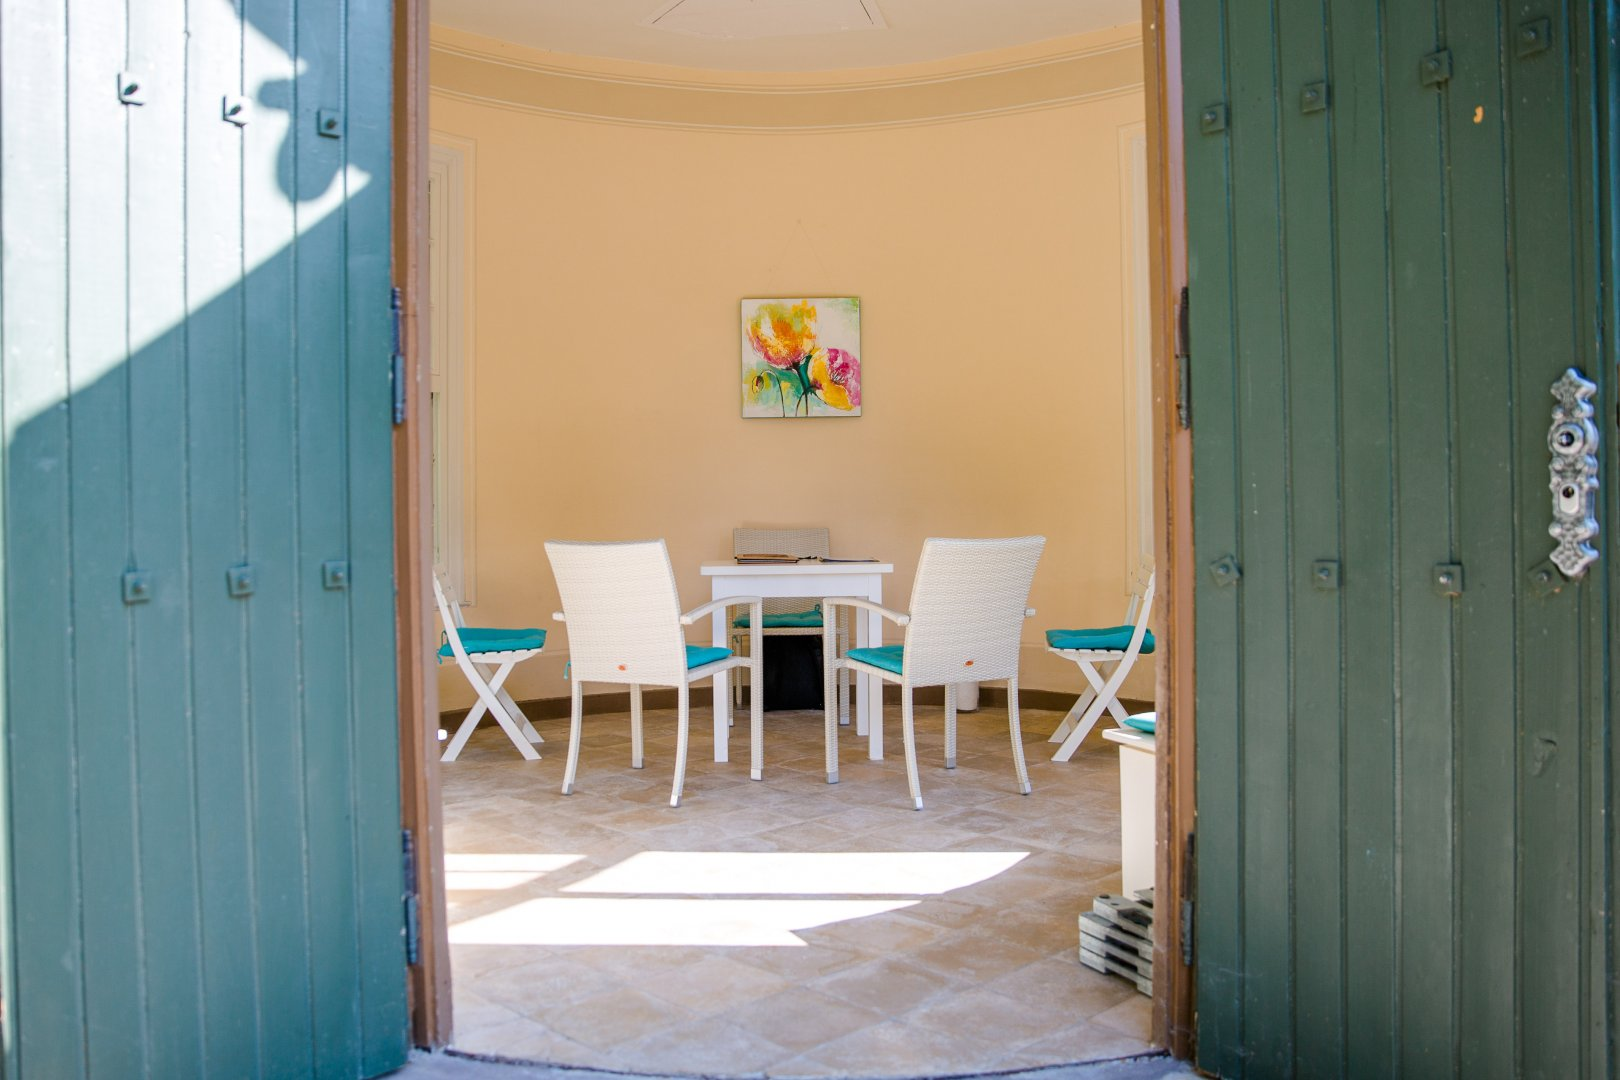 Blue Turquoise Room Property Yellow Aqua Wall House Azure Floor Interior design Furniture Building Chair Door Home Turquoise Table Wood Flooring Ceiling